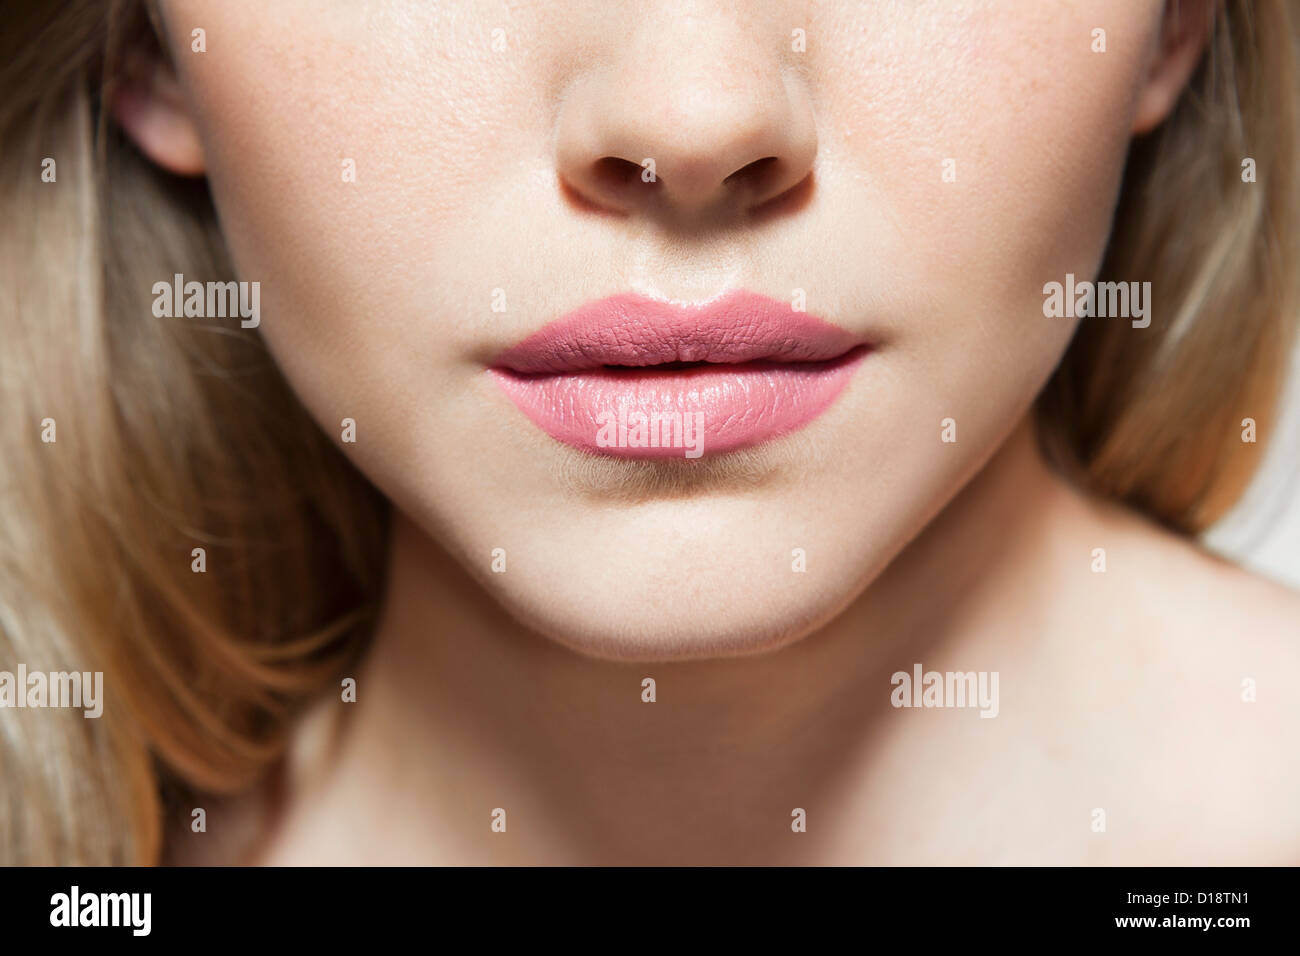 Womans face, close up of mouth - Stock Image